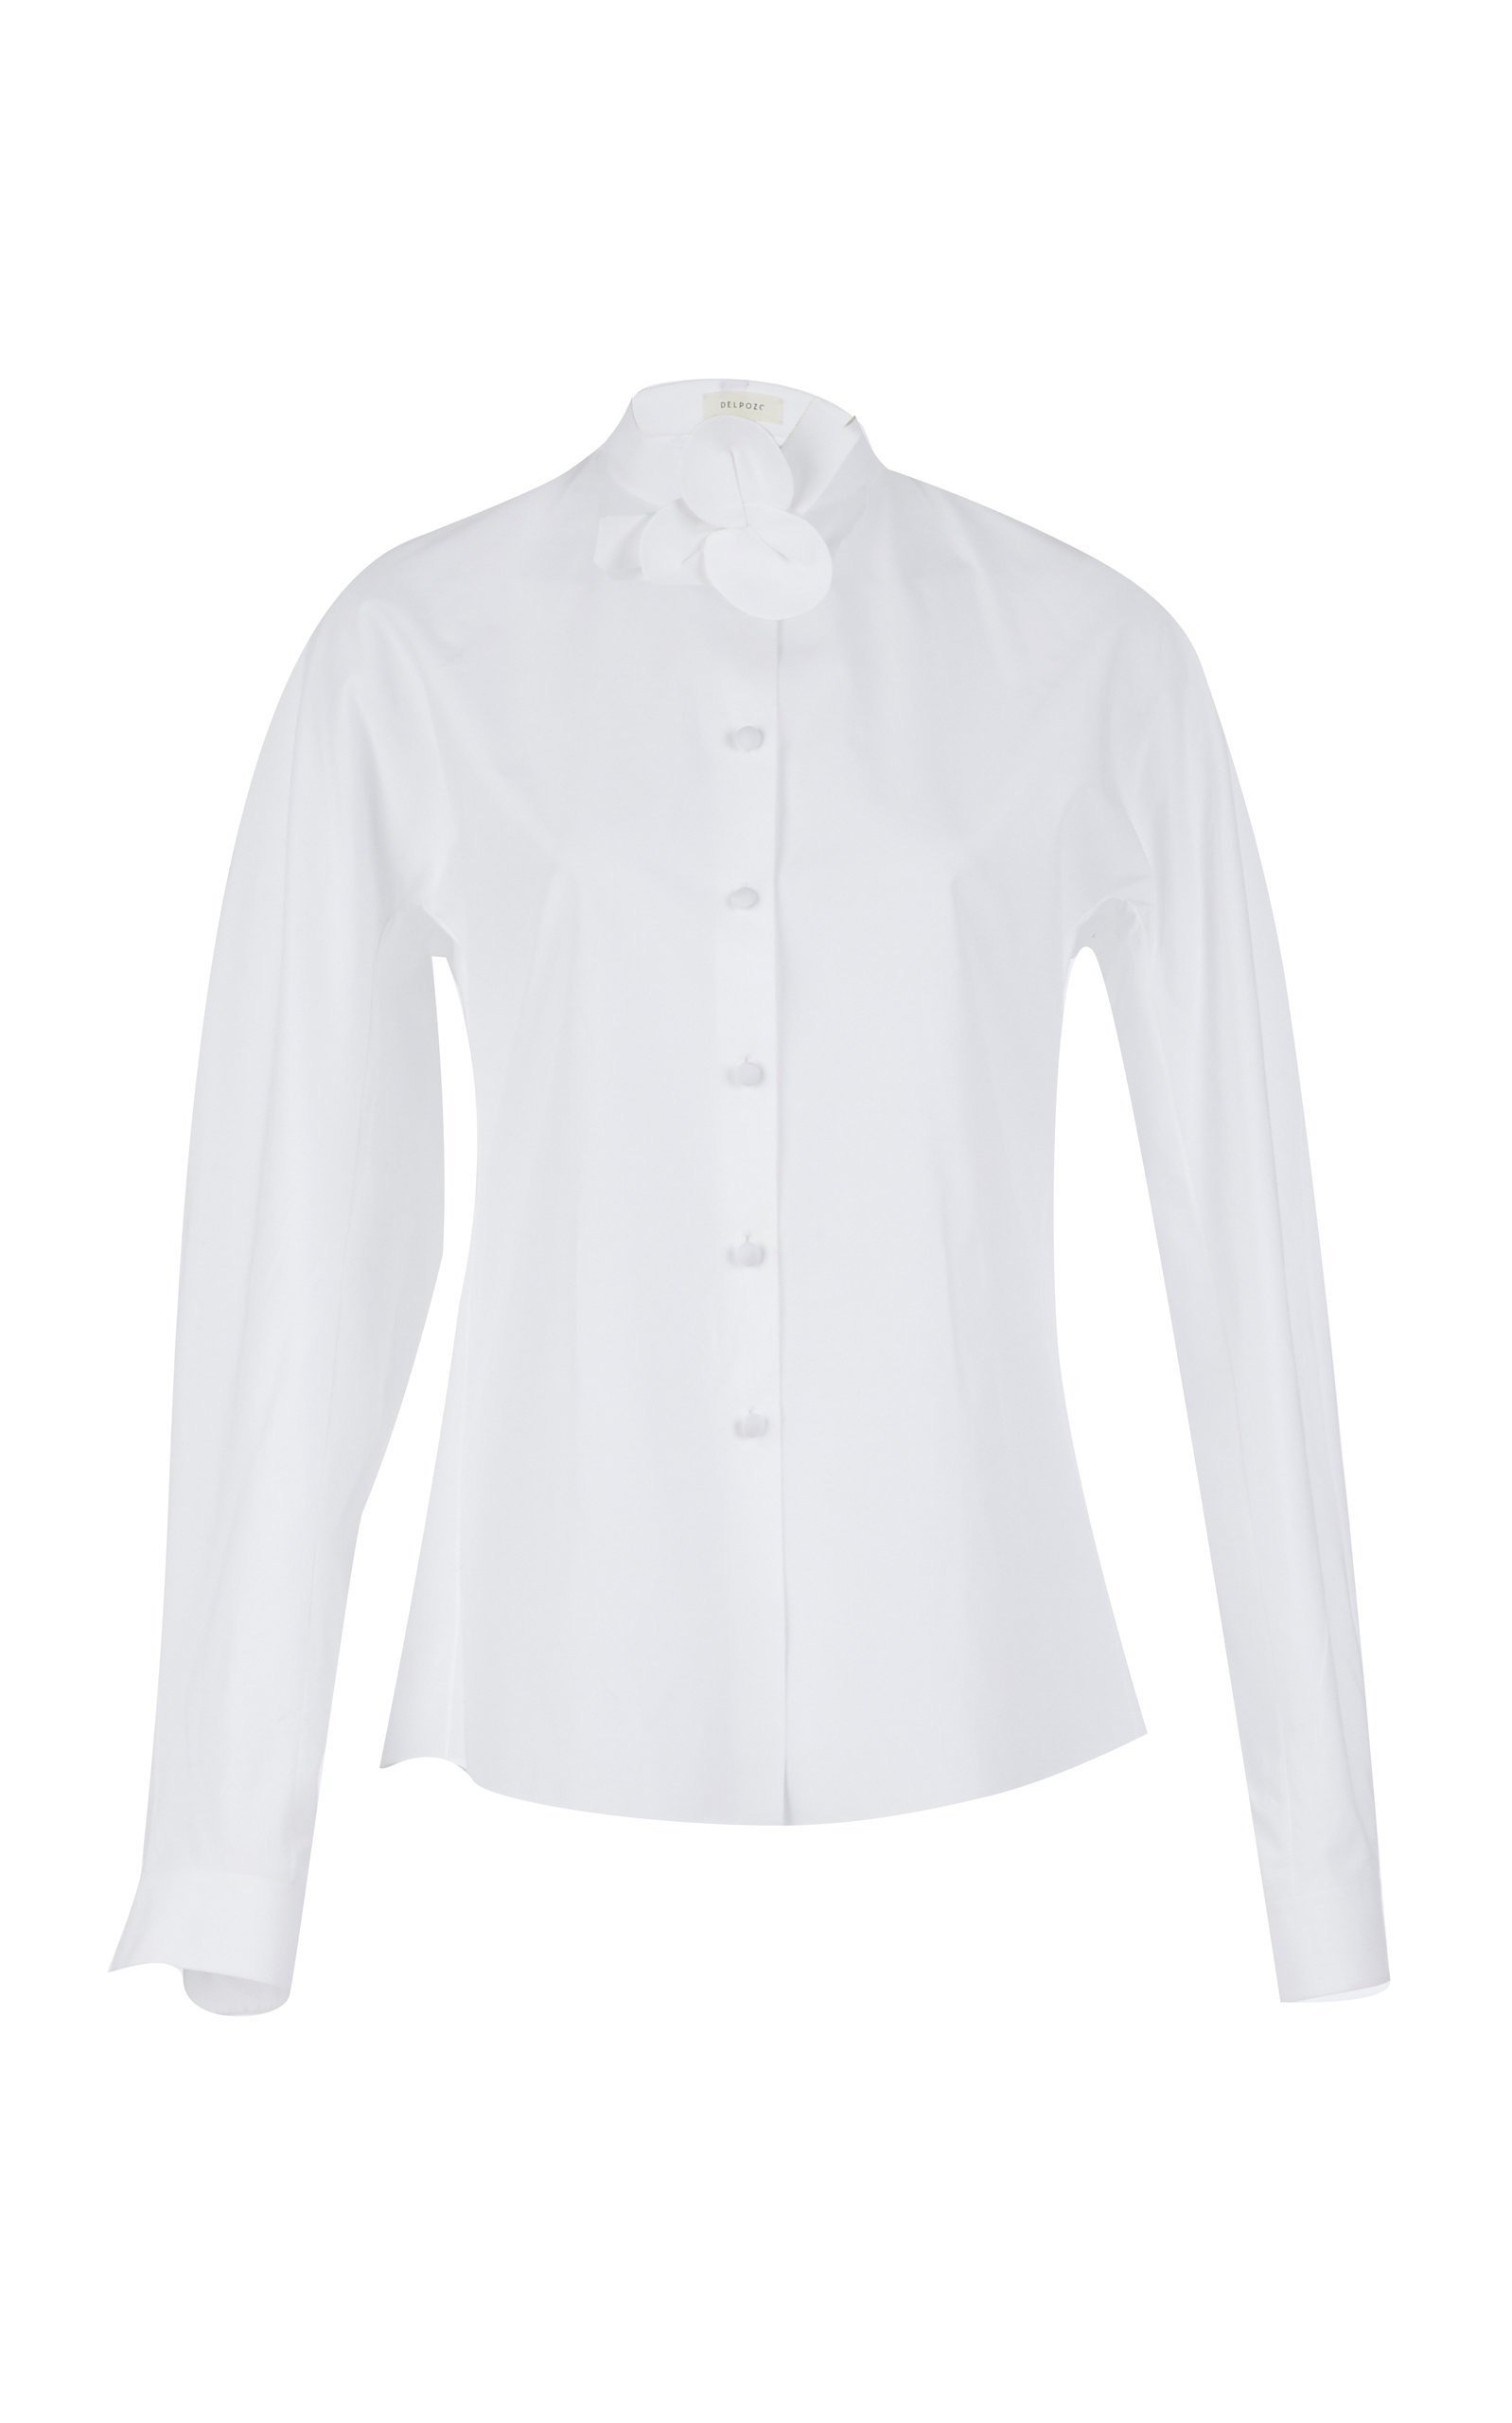 Shirt With Flower Neckband in White